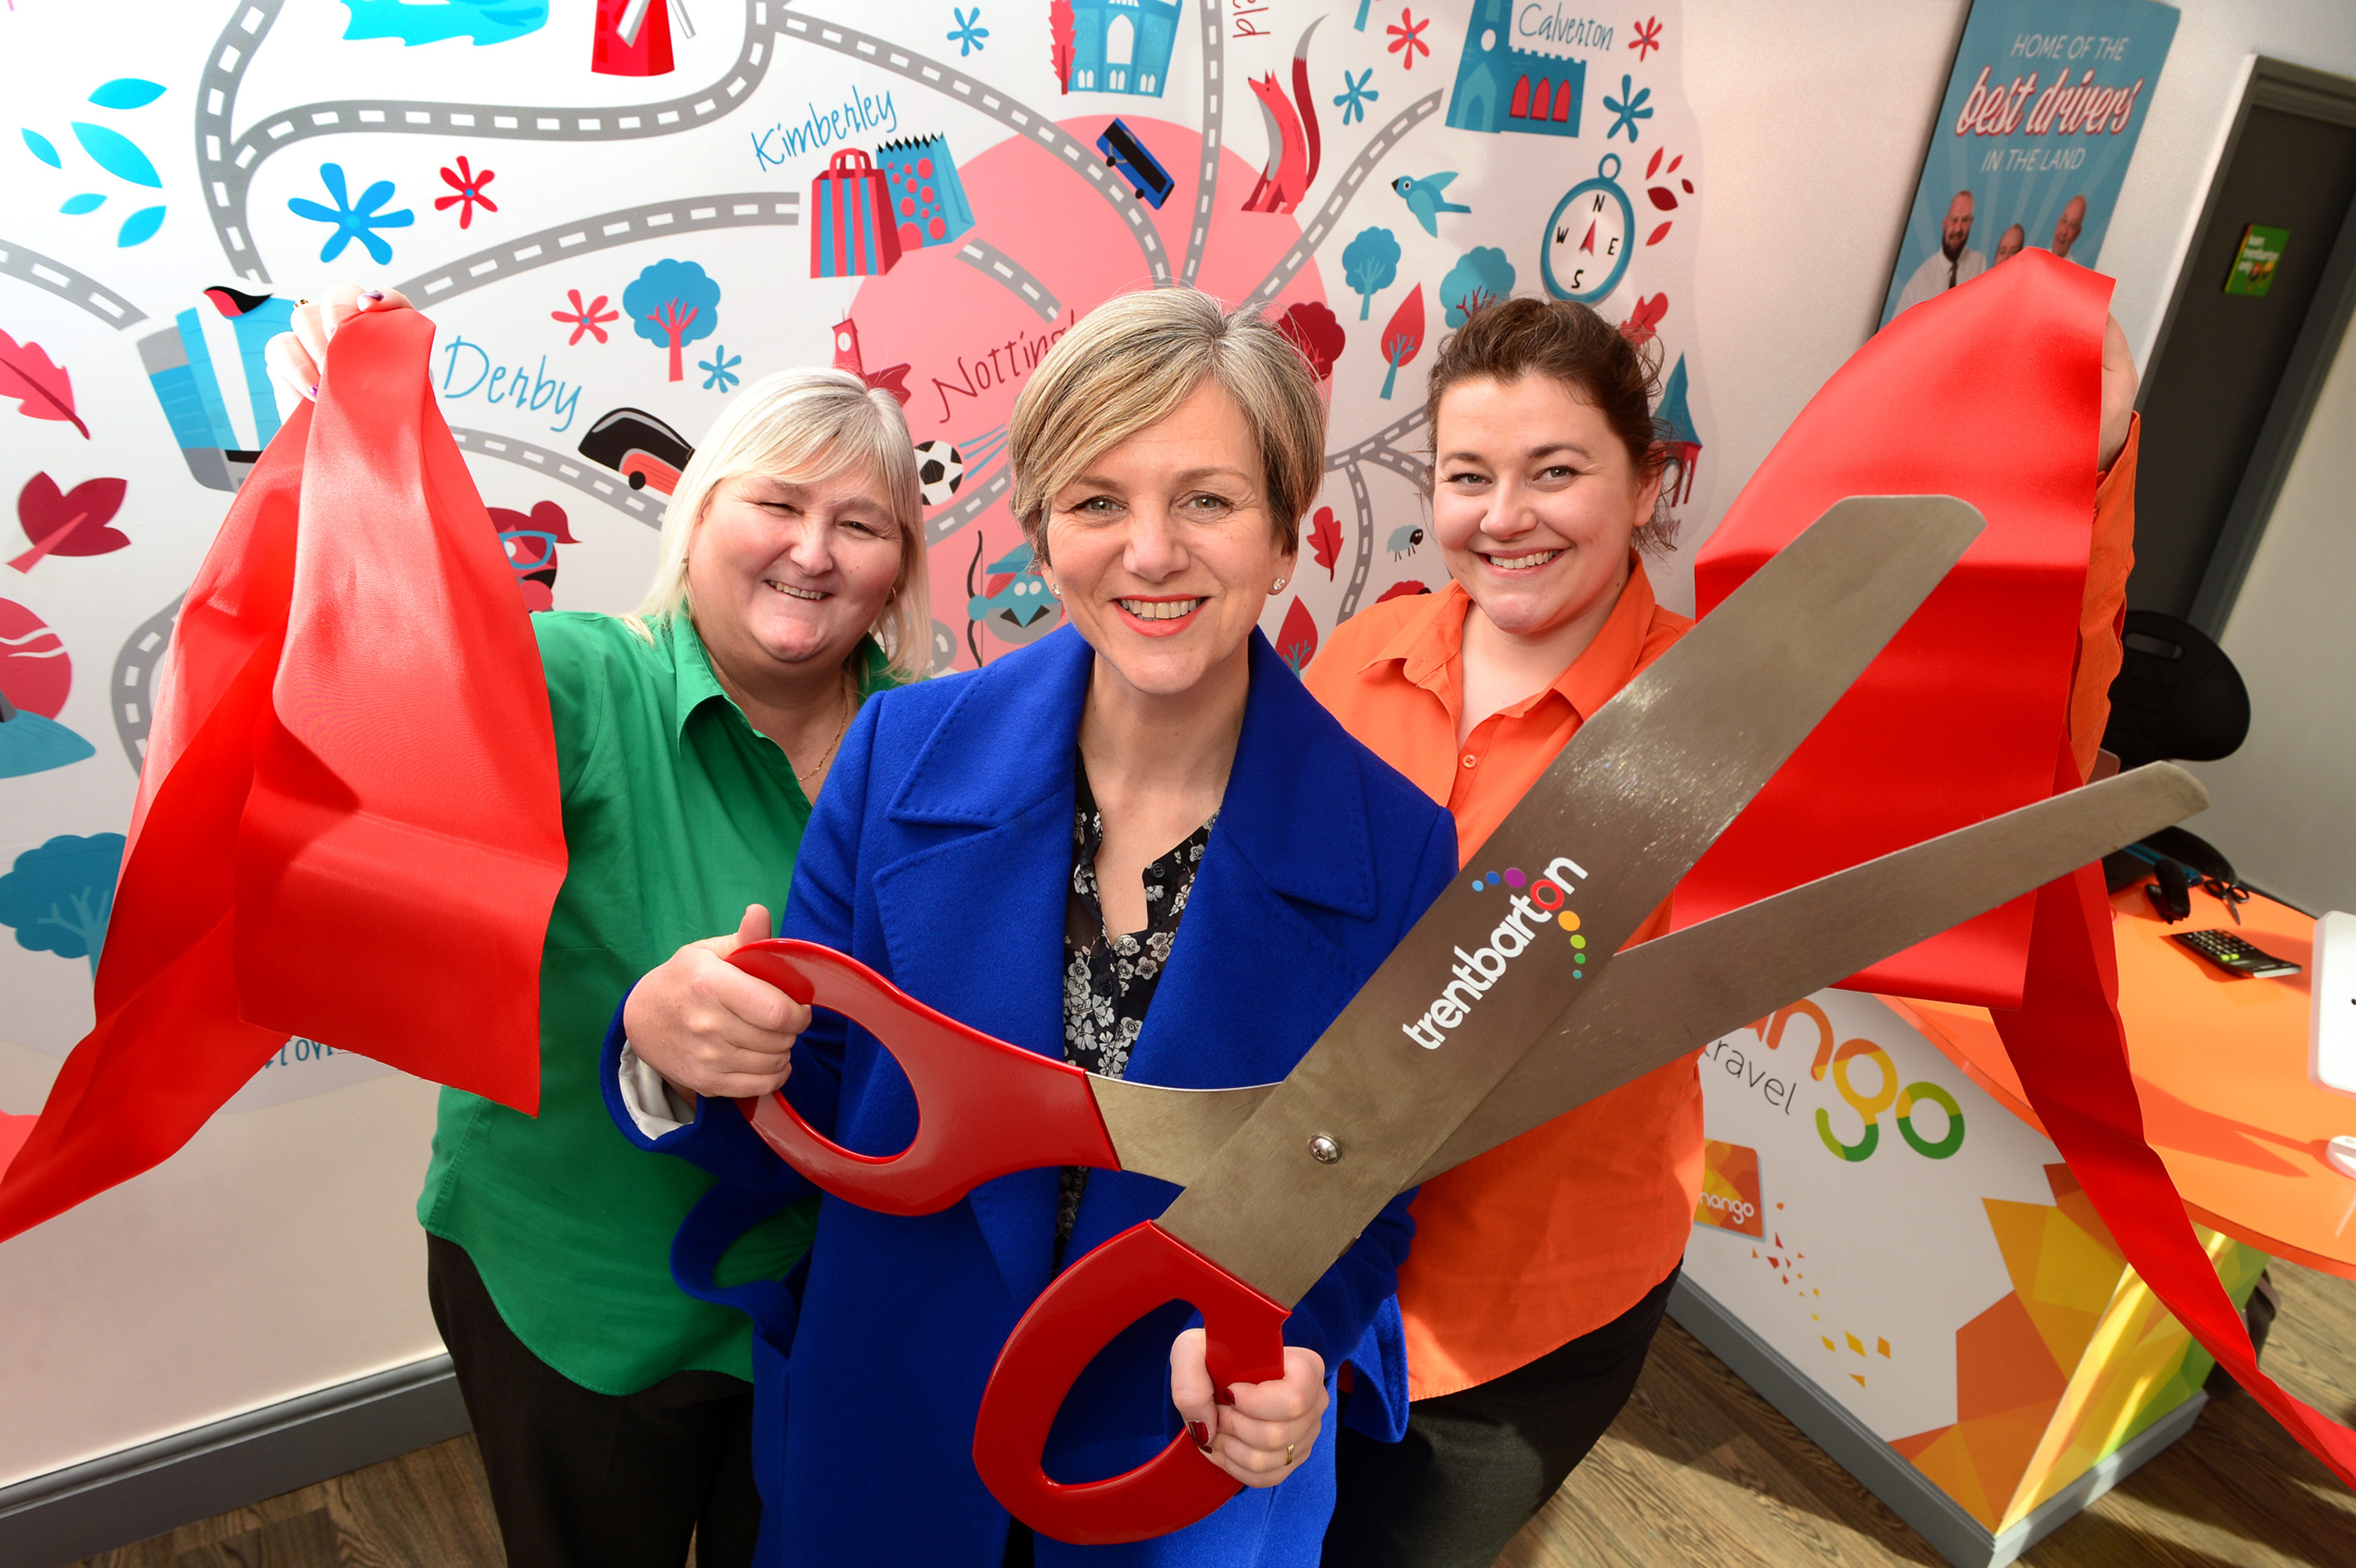 Lillian Greenwood MP (centre) with trentbarton's Angie Woodhouse (left) and Claire Chamberlain (right) at the new travel shop on Maid Marian Way.